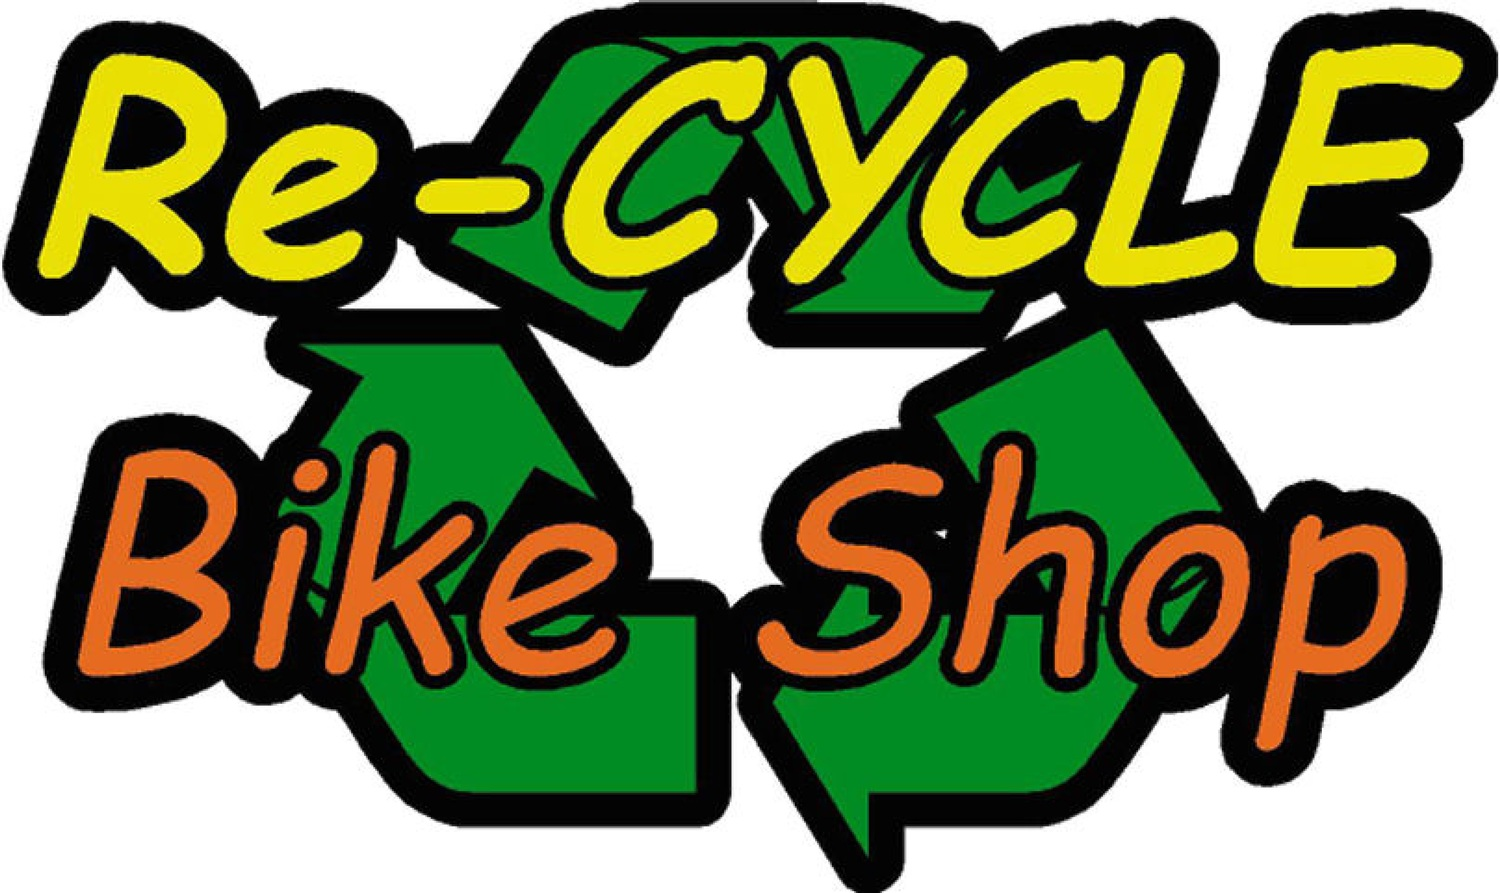 Re-Cycle Bike Shop